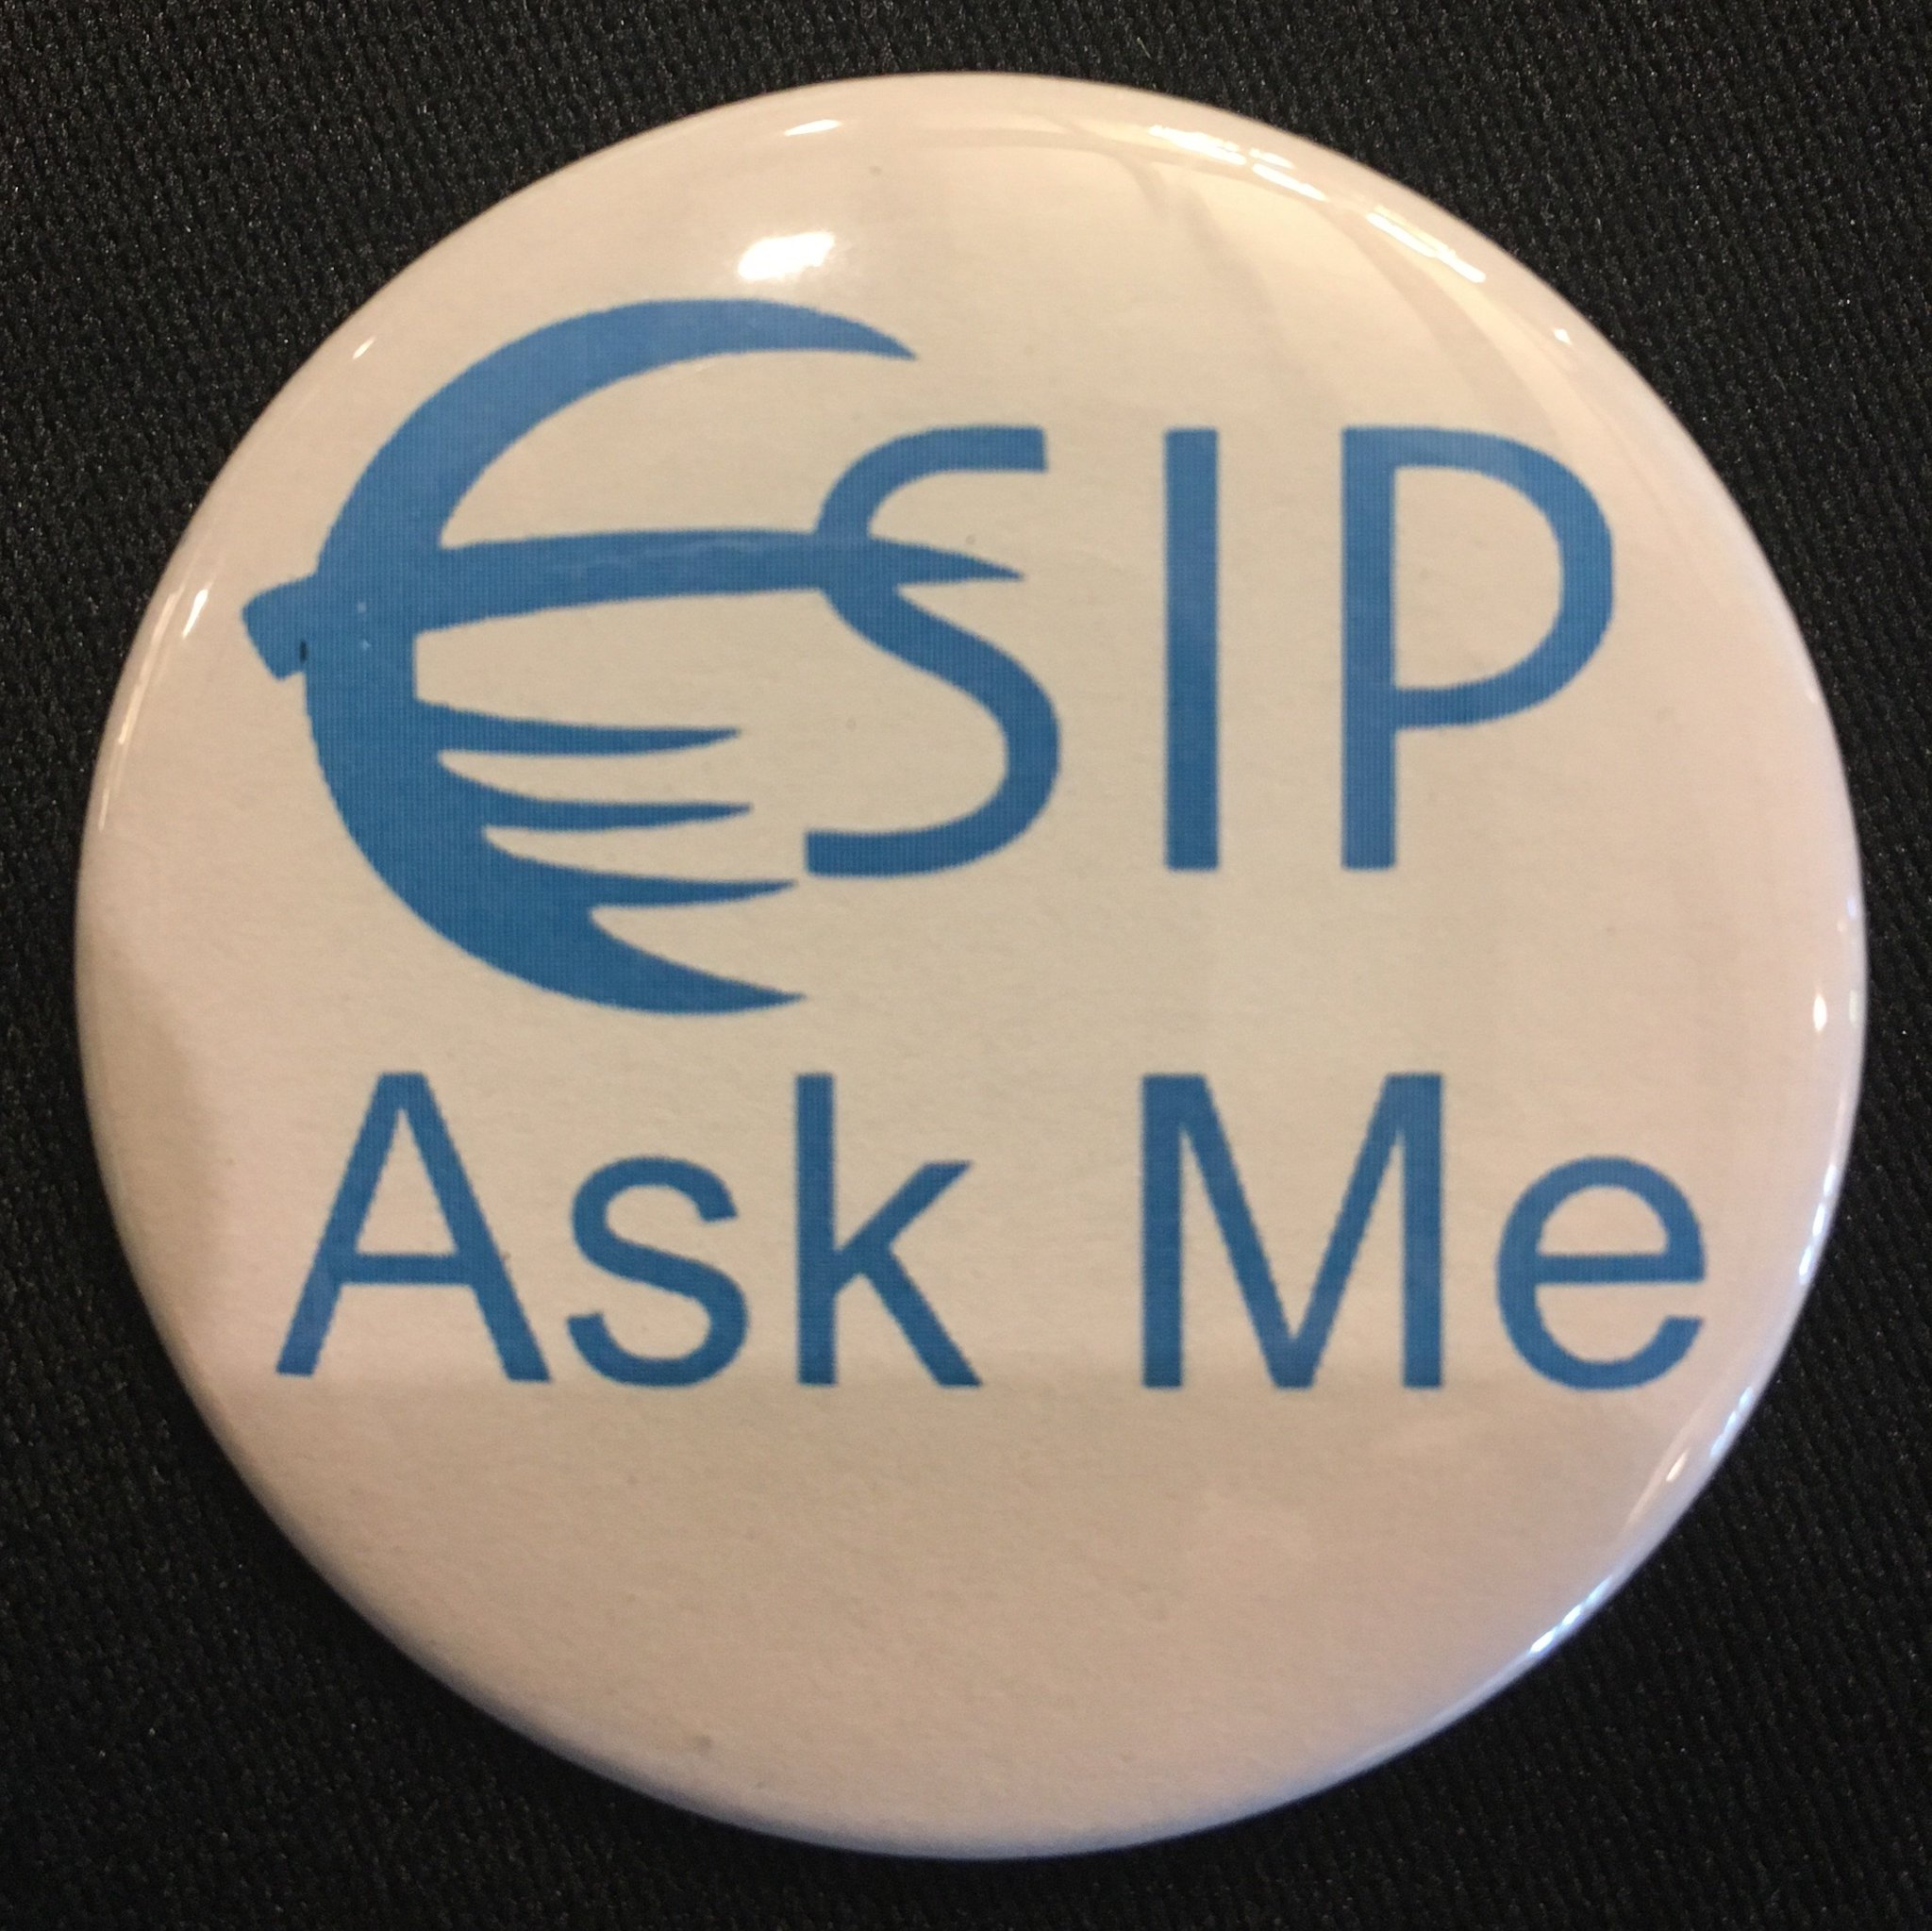 #ESIPfed starting off with a welcome from president Emily Law. First timer? Welcome! Questions? Find an Ambassador (wearing button) https://t.co/dkNPmu6J9C